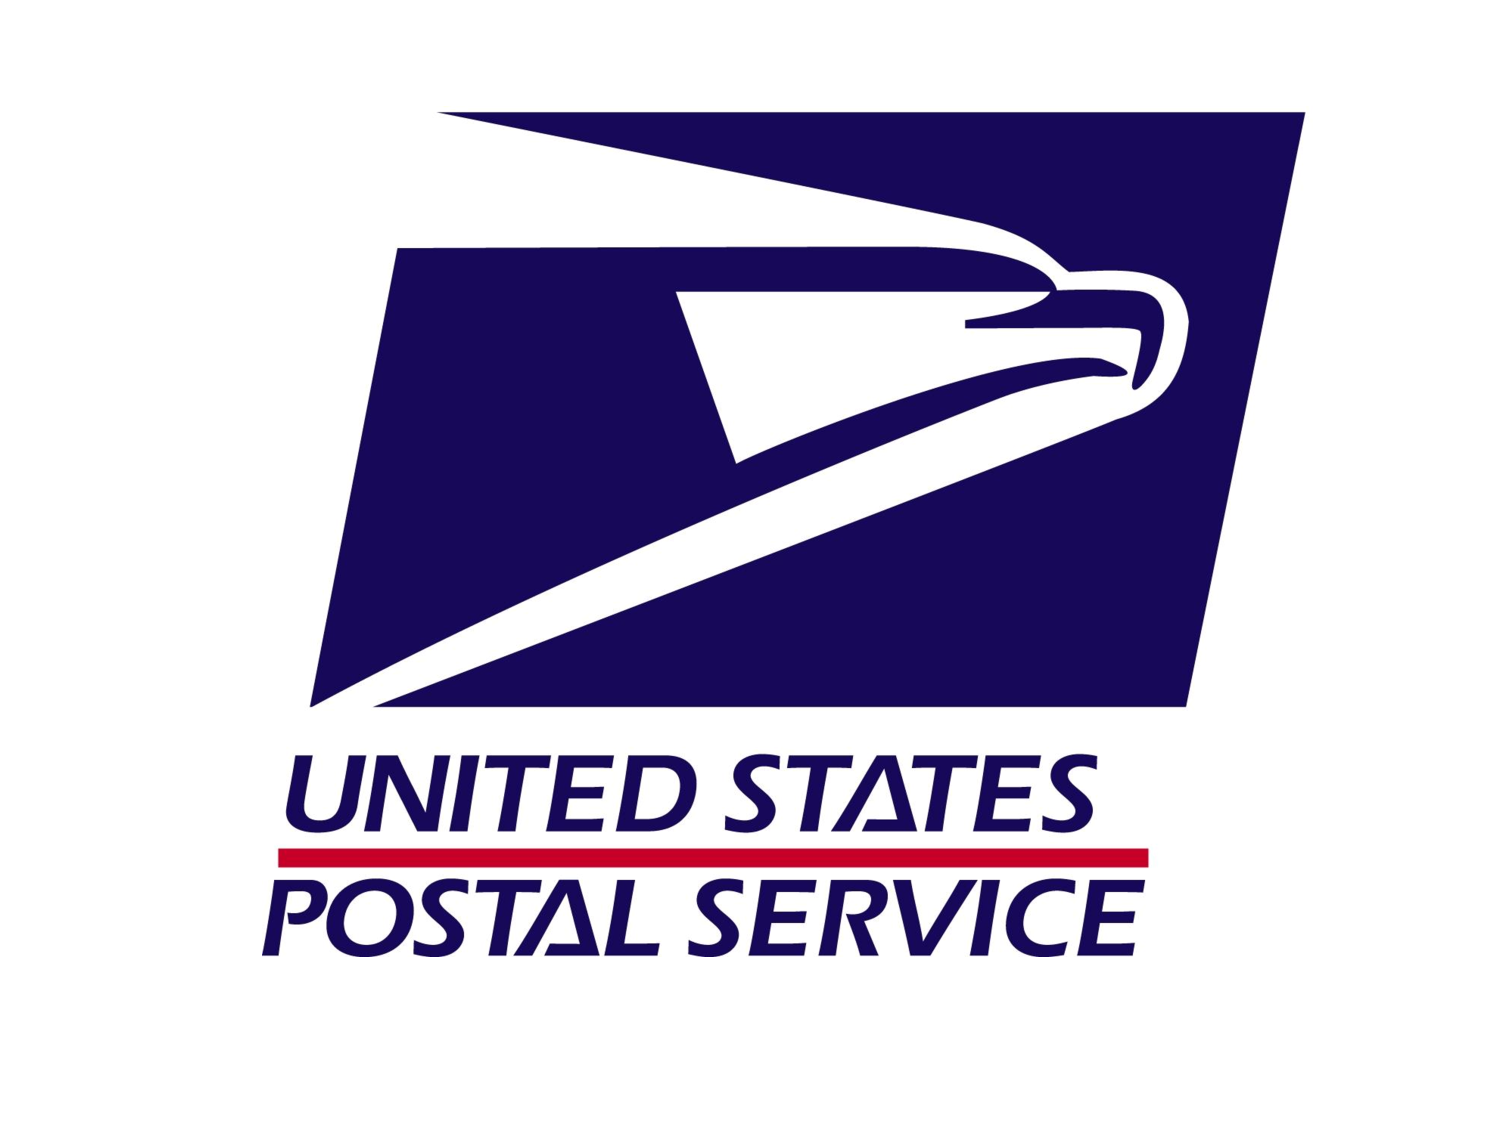 airborne united states postal service and Task force on the united states postal system on april 12 of pennsylvania, each to be a governor of the united states postal service.